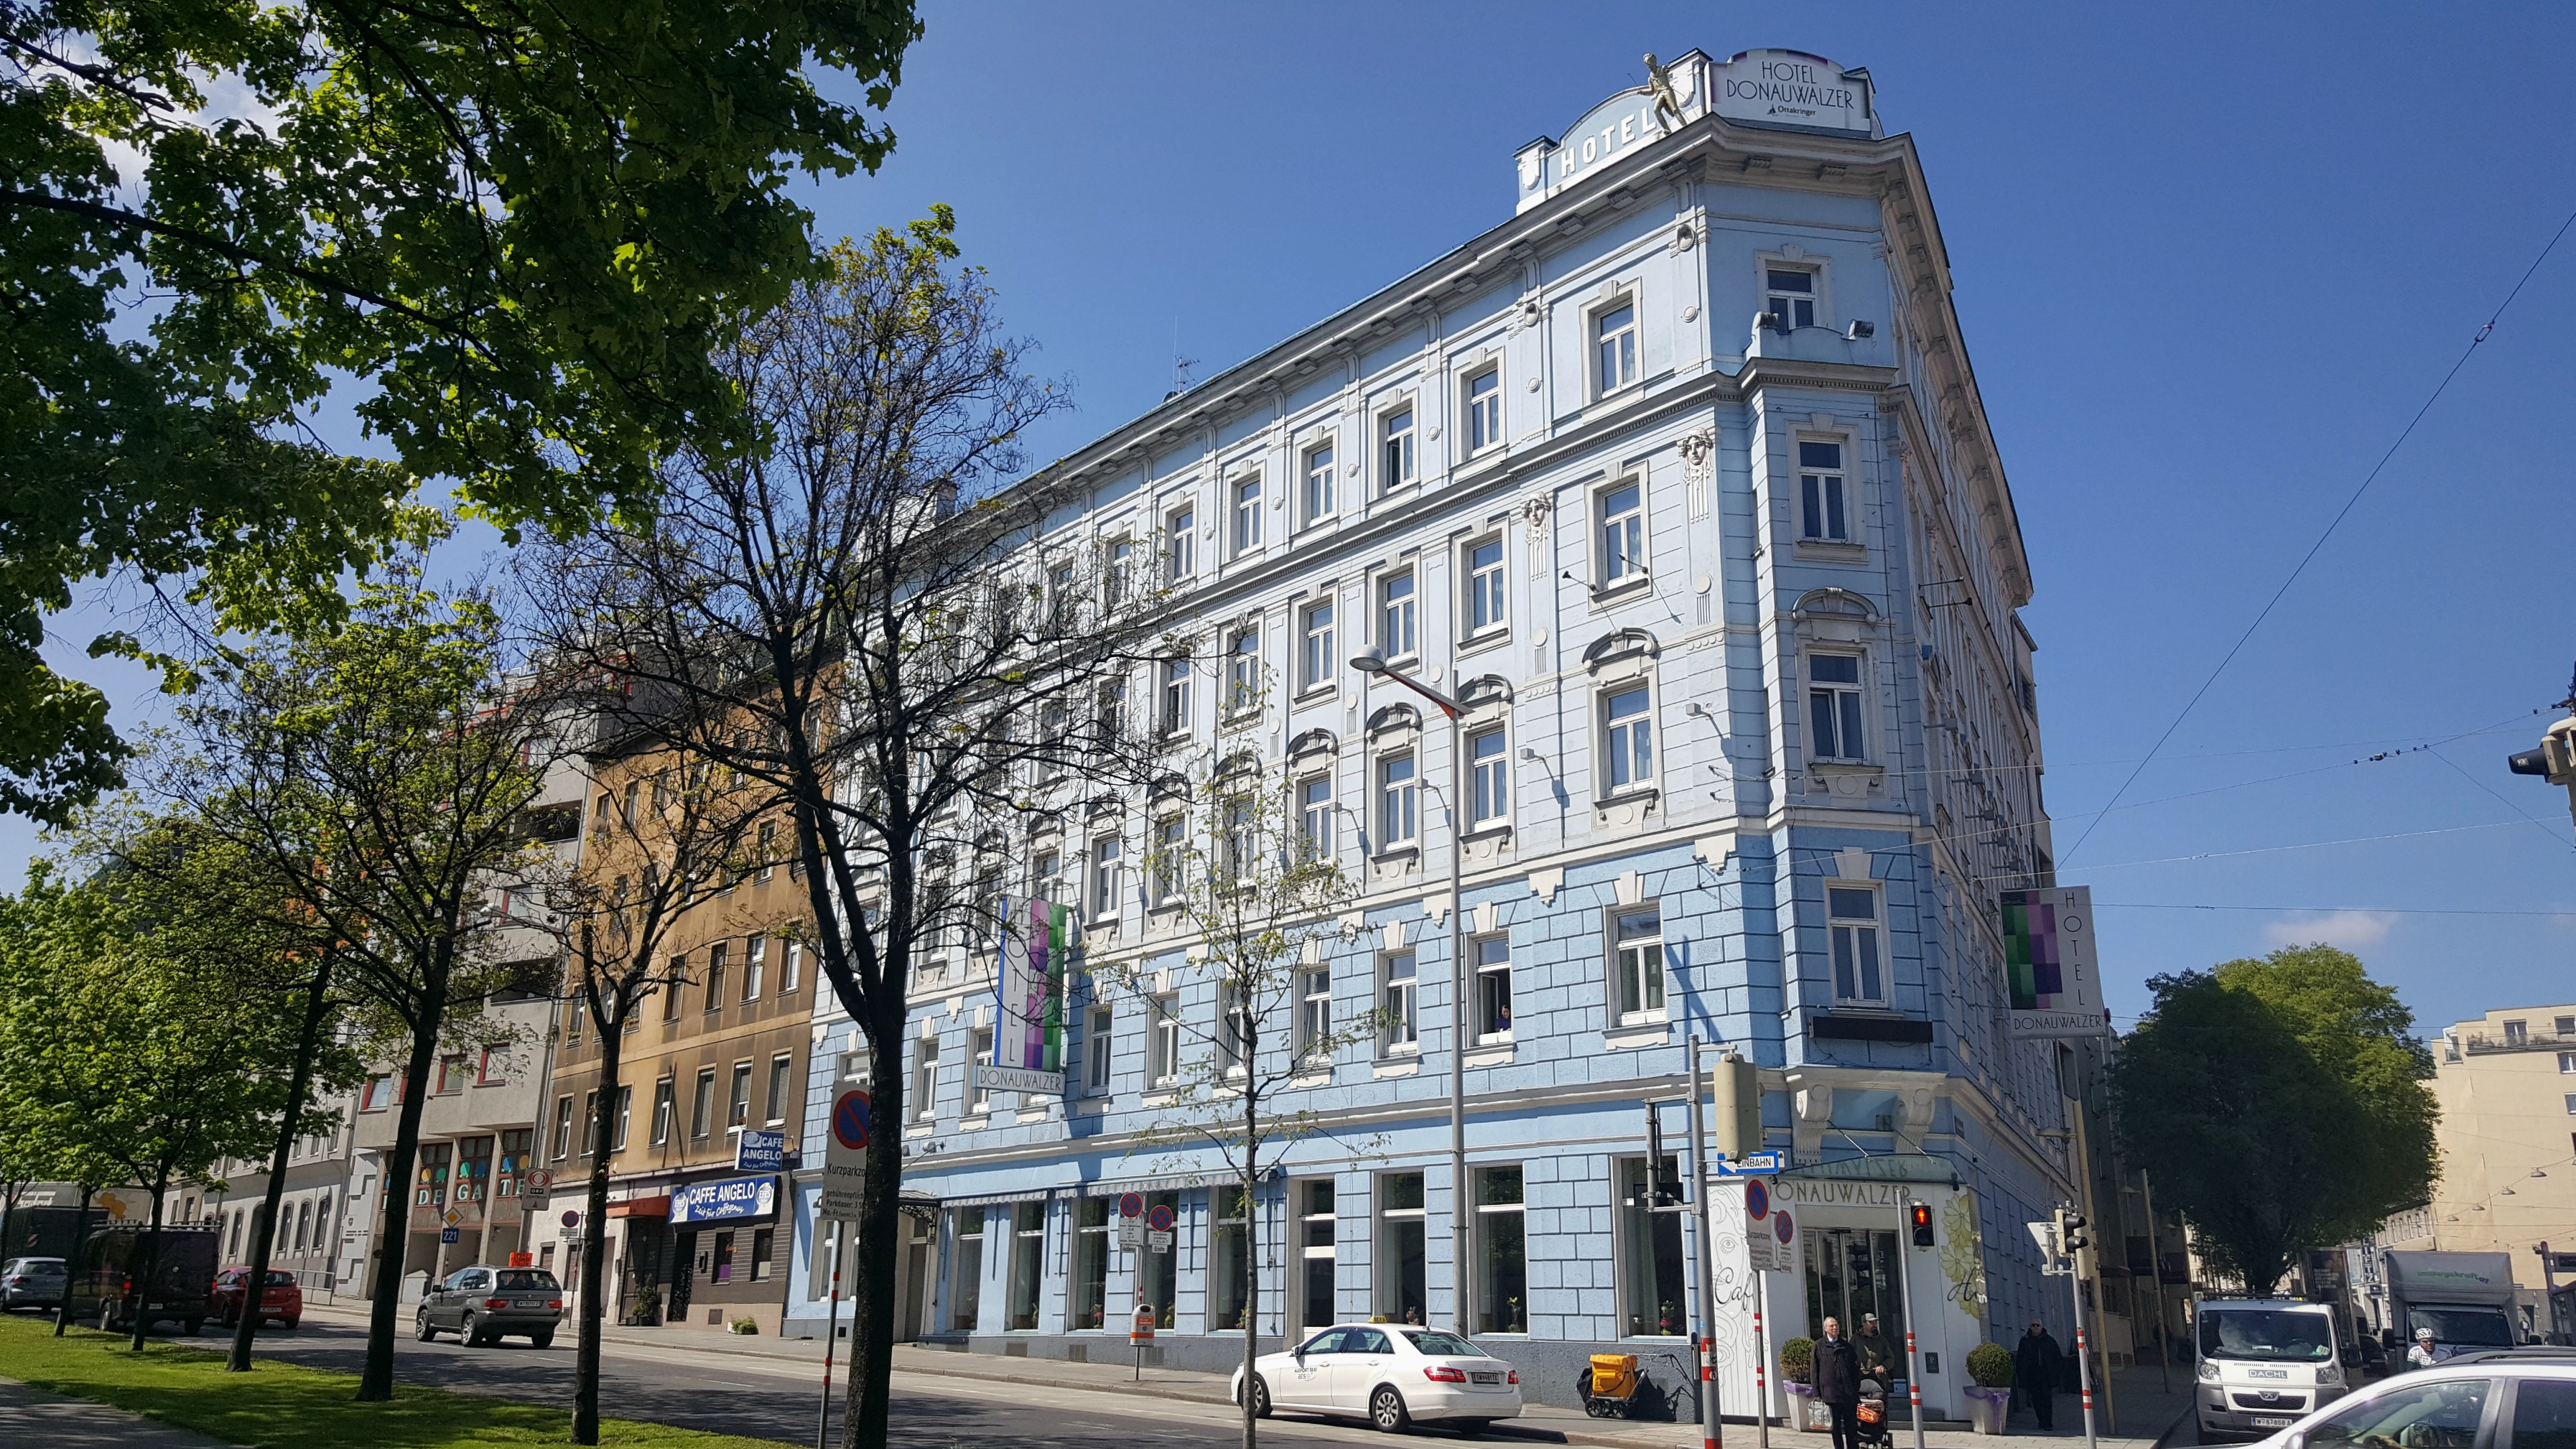 Boutique Hotel Donauwalzer: The Most Charming Place to Stay in Vienna